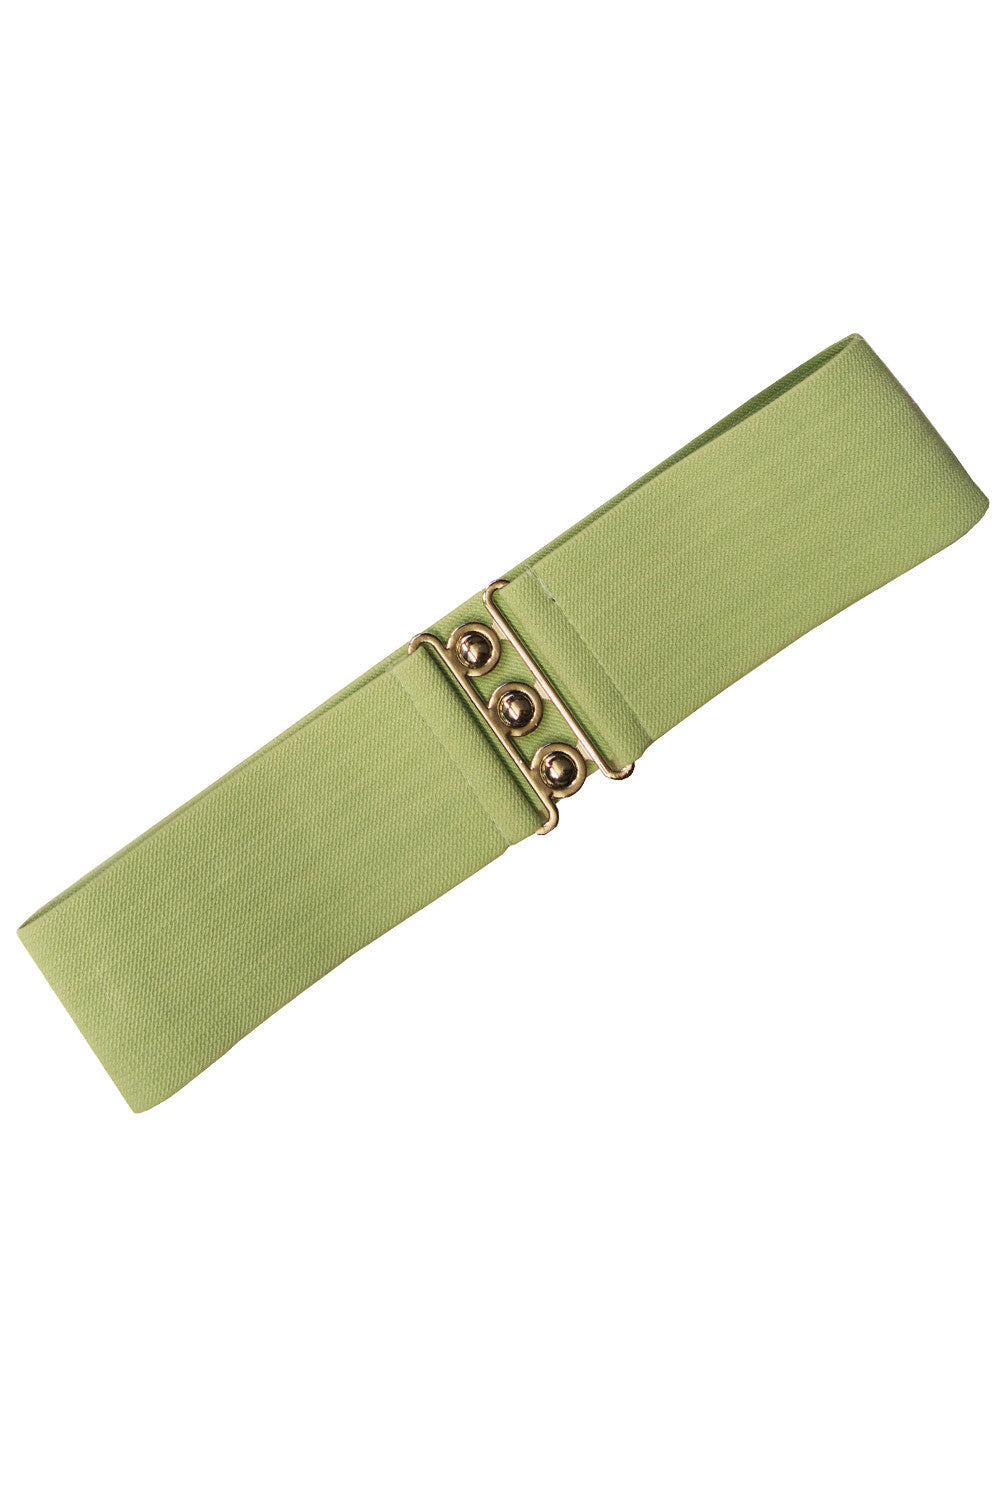 Retro Stretch Belt in Mint - Natasha Marie Clothing